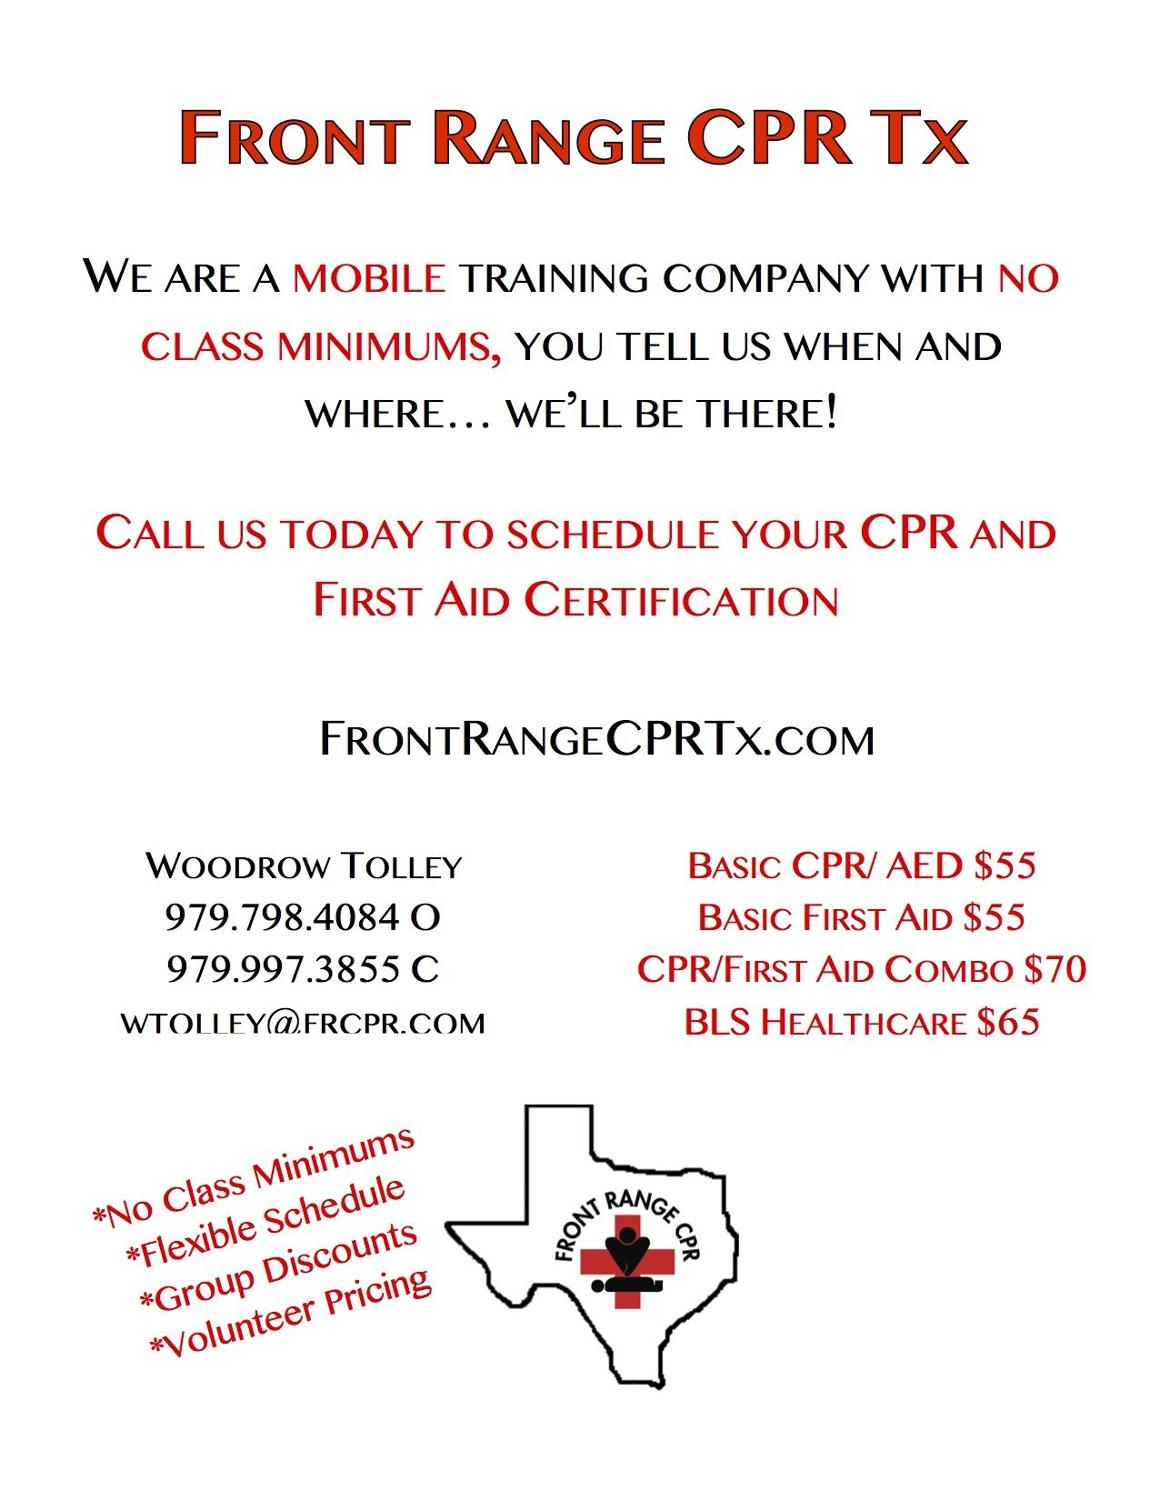 All About First Aid Classes Seattle Cpr Alcs Bls Newcastle Training